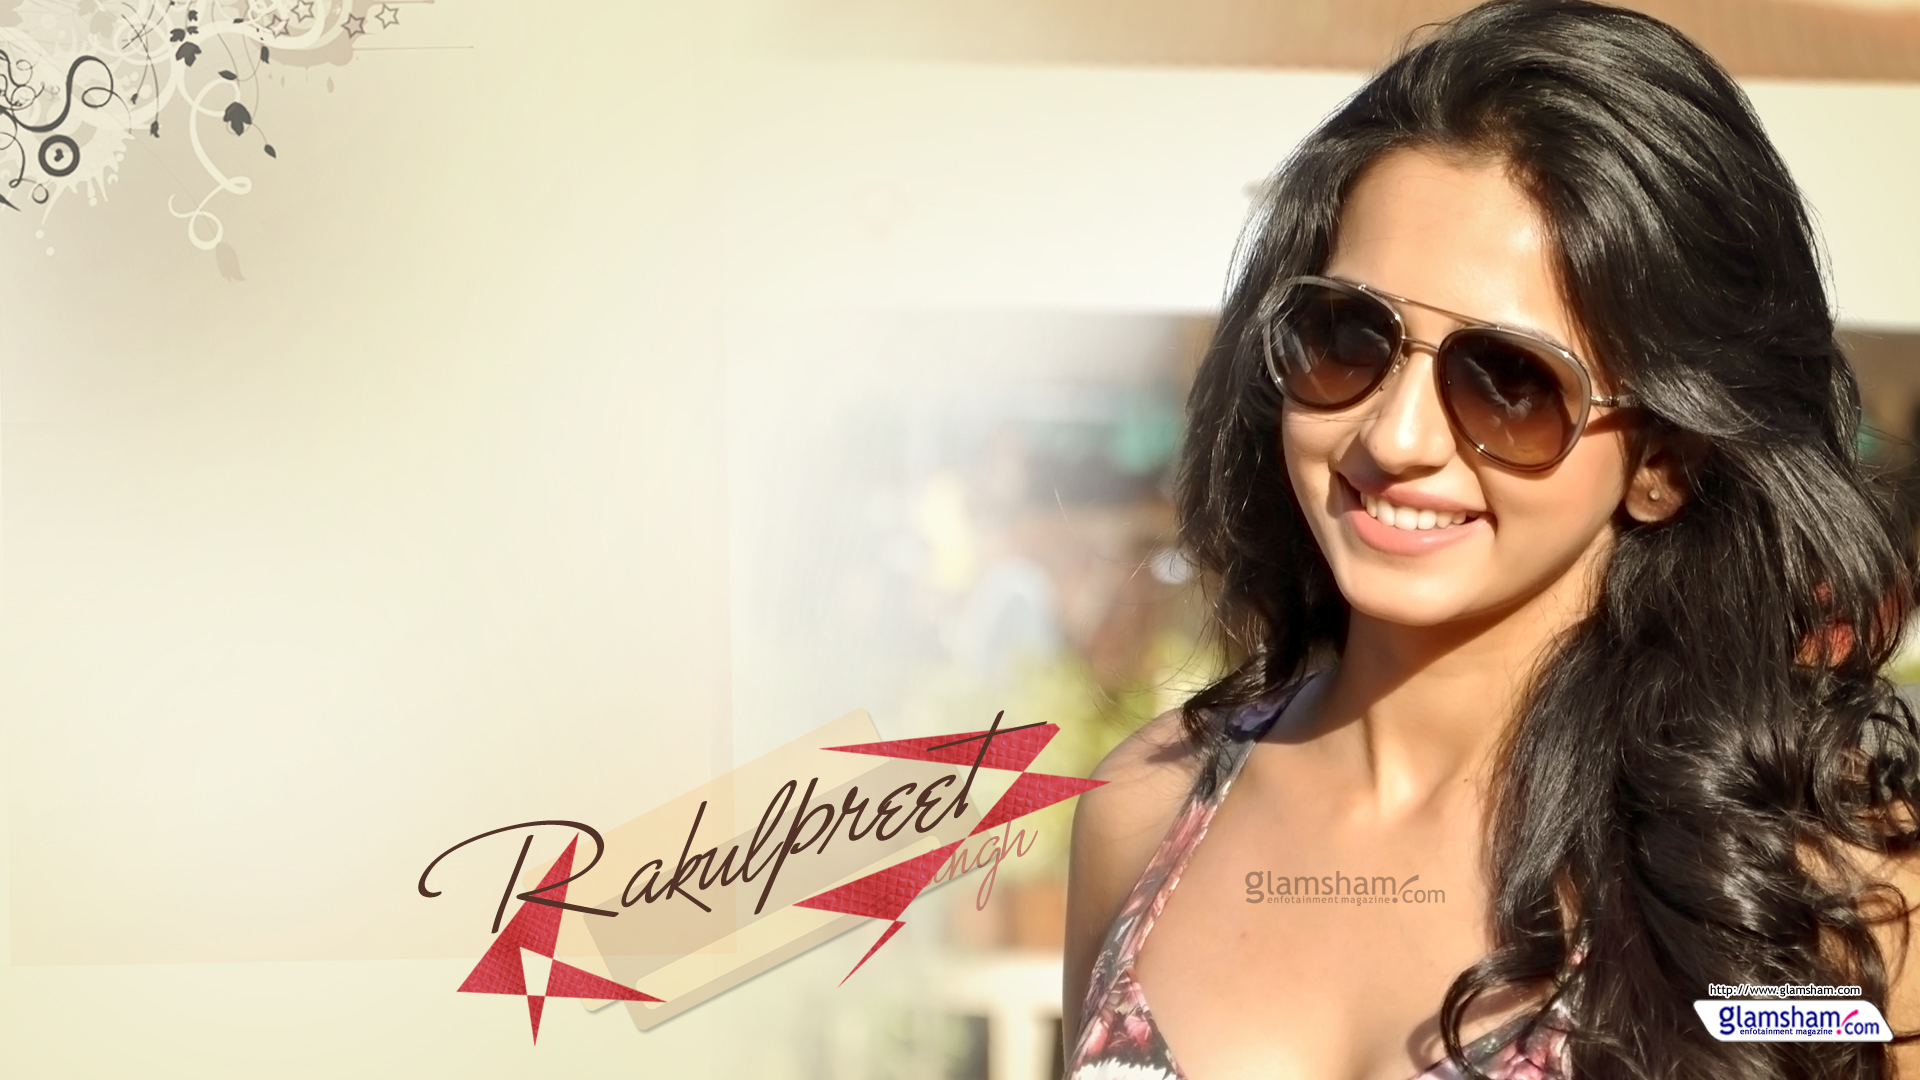 rakul preet singh wallpapers hd wallpapers 1920x1080